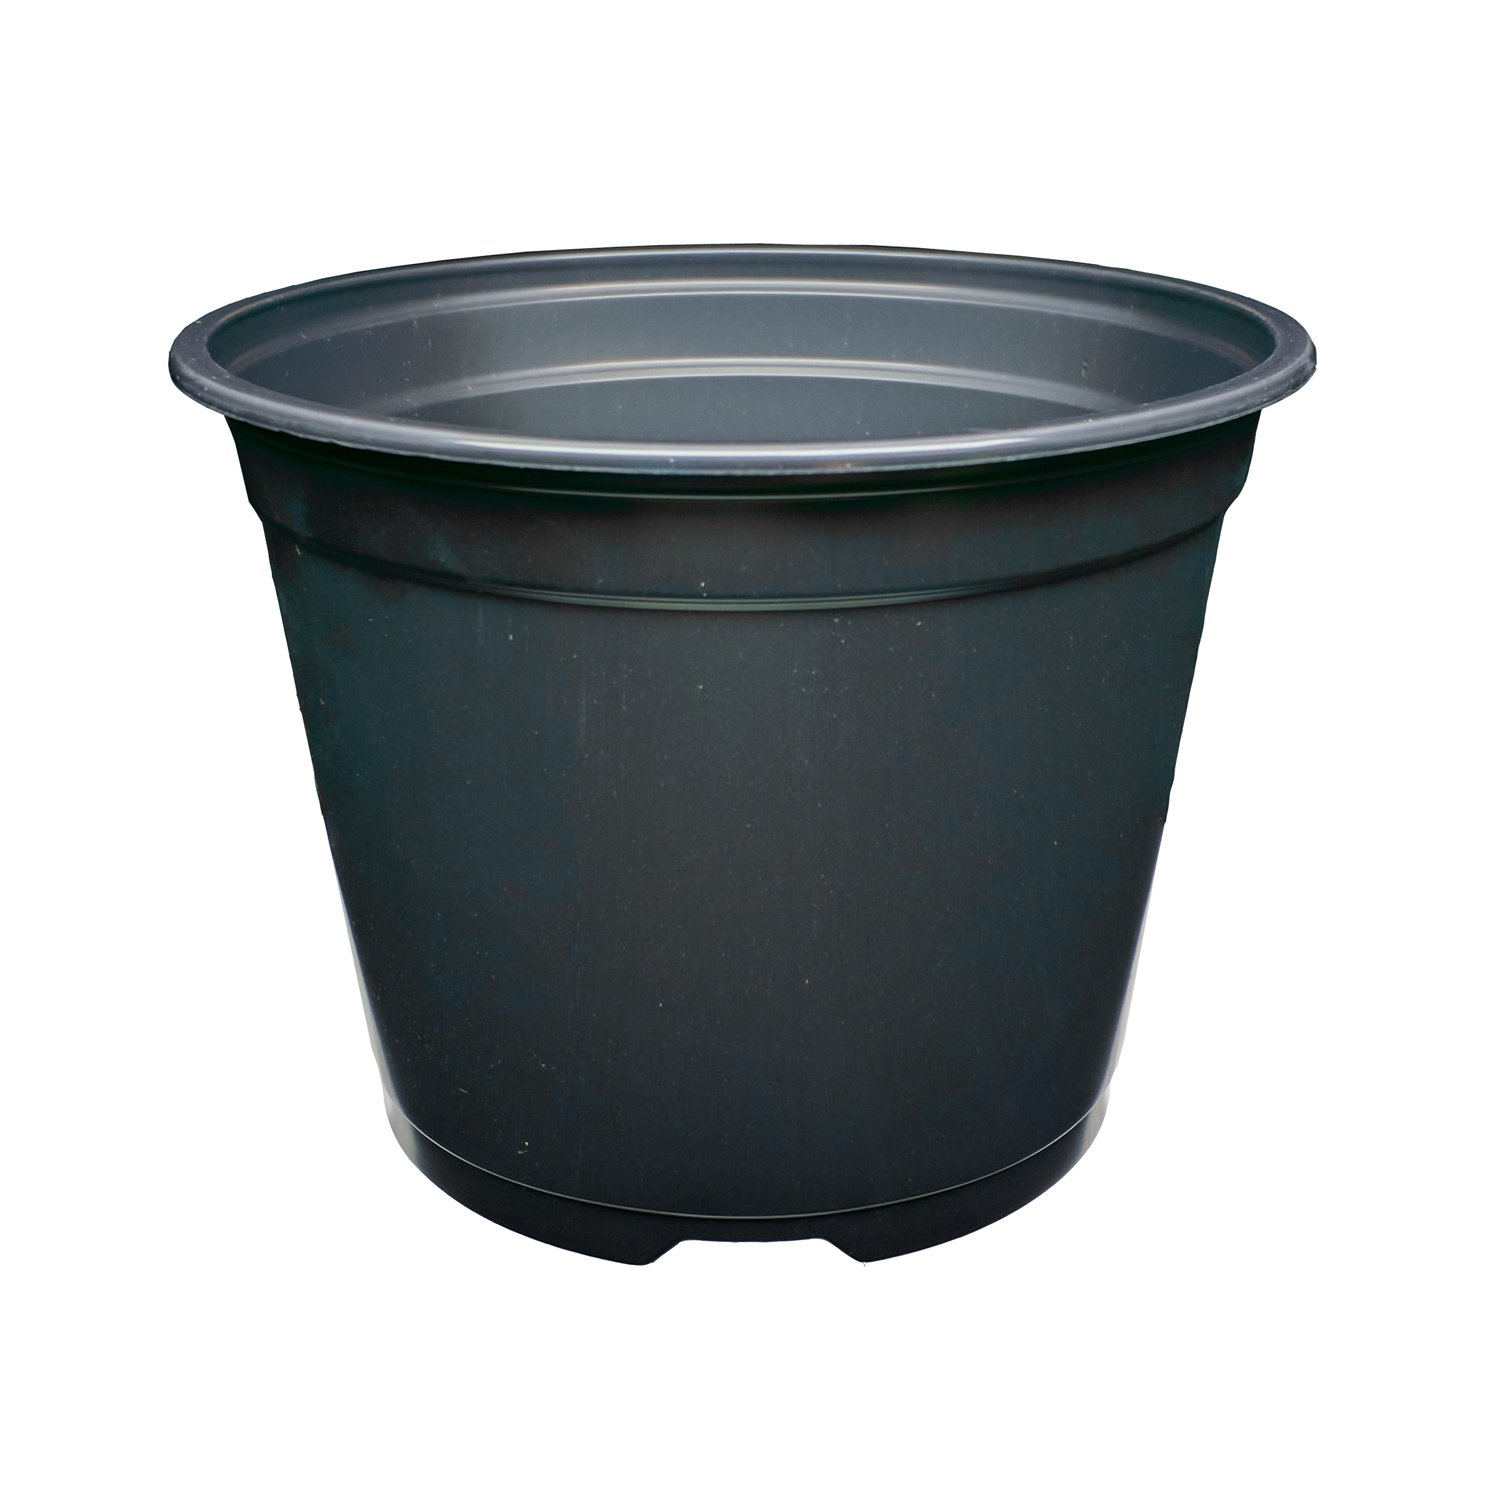 SP600 6'' Round Flower Pots - Made in USA - Reusable, Recyclable - Garden, Hydroponics, Nursery, Farm, Greenhouse (680, Black)